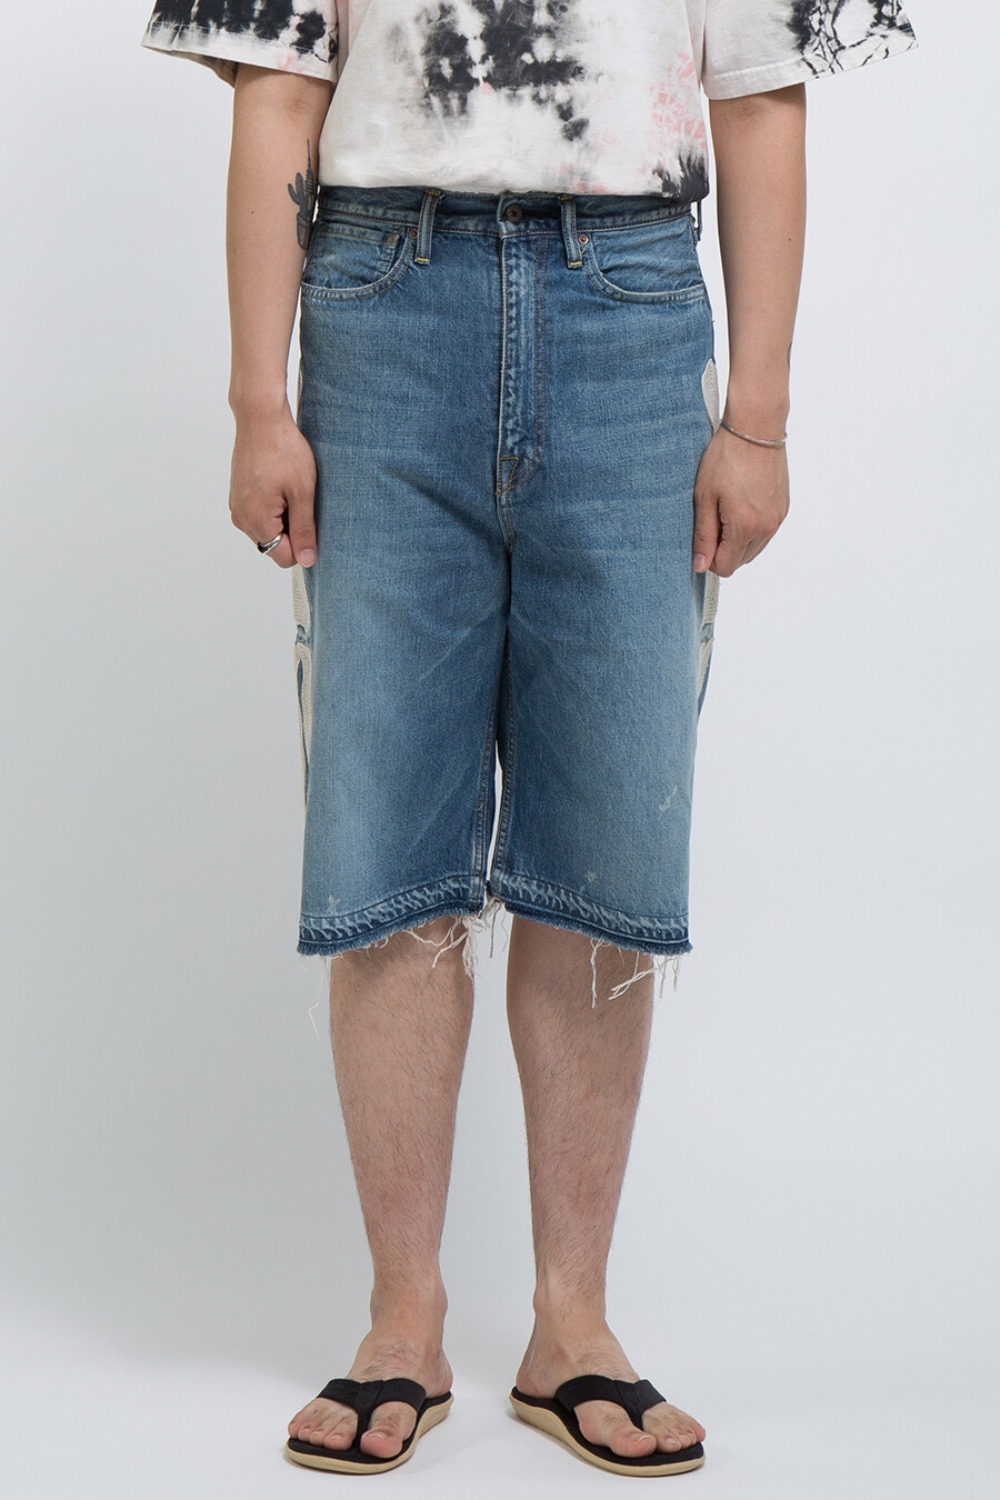 14OZ DENIM 5P SHORT PANTS(BONE EMBROIDERY)